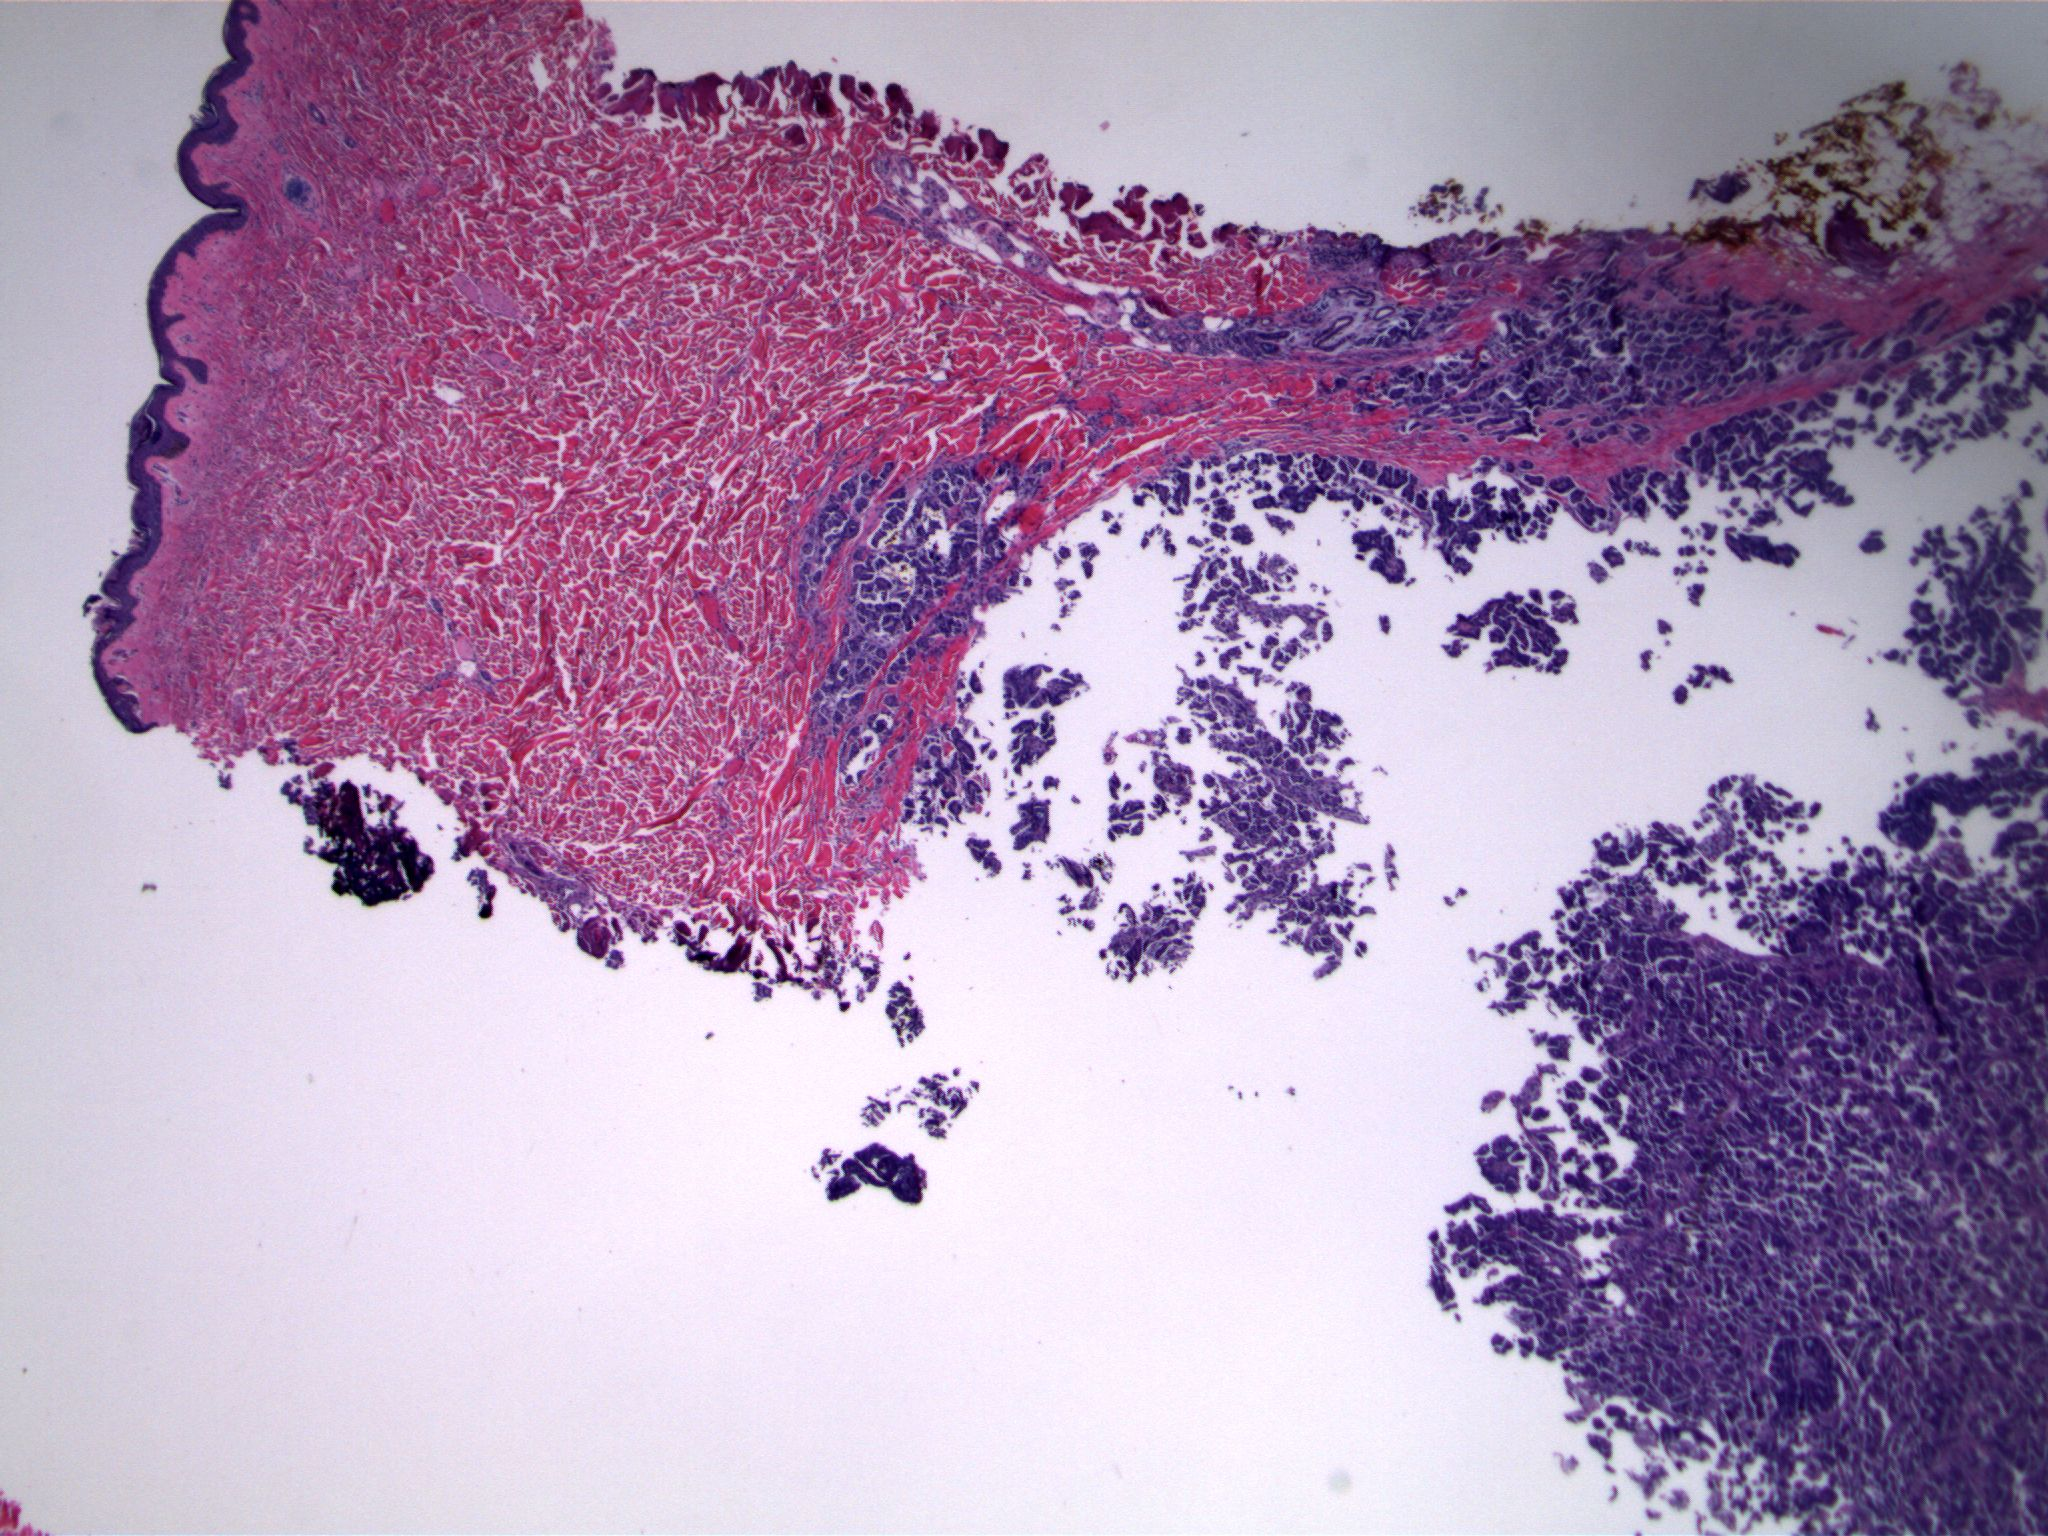 Image 1. The dermis contains numerous small cellular clusters. Normal skin adnexal structures are present (upper center)